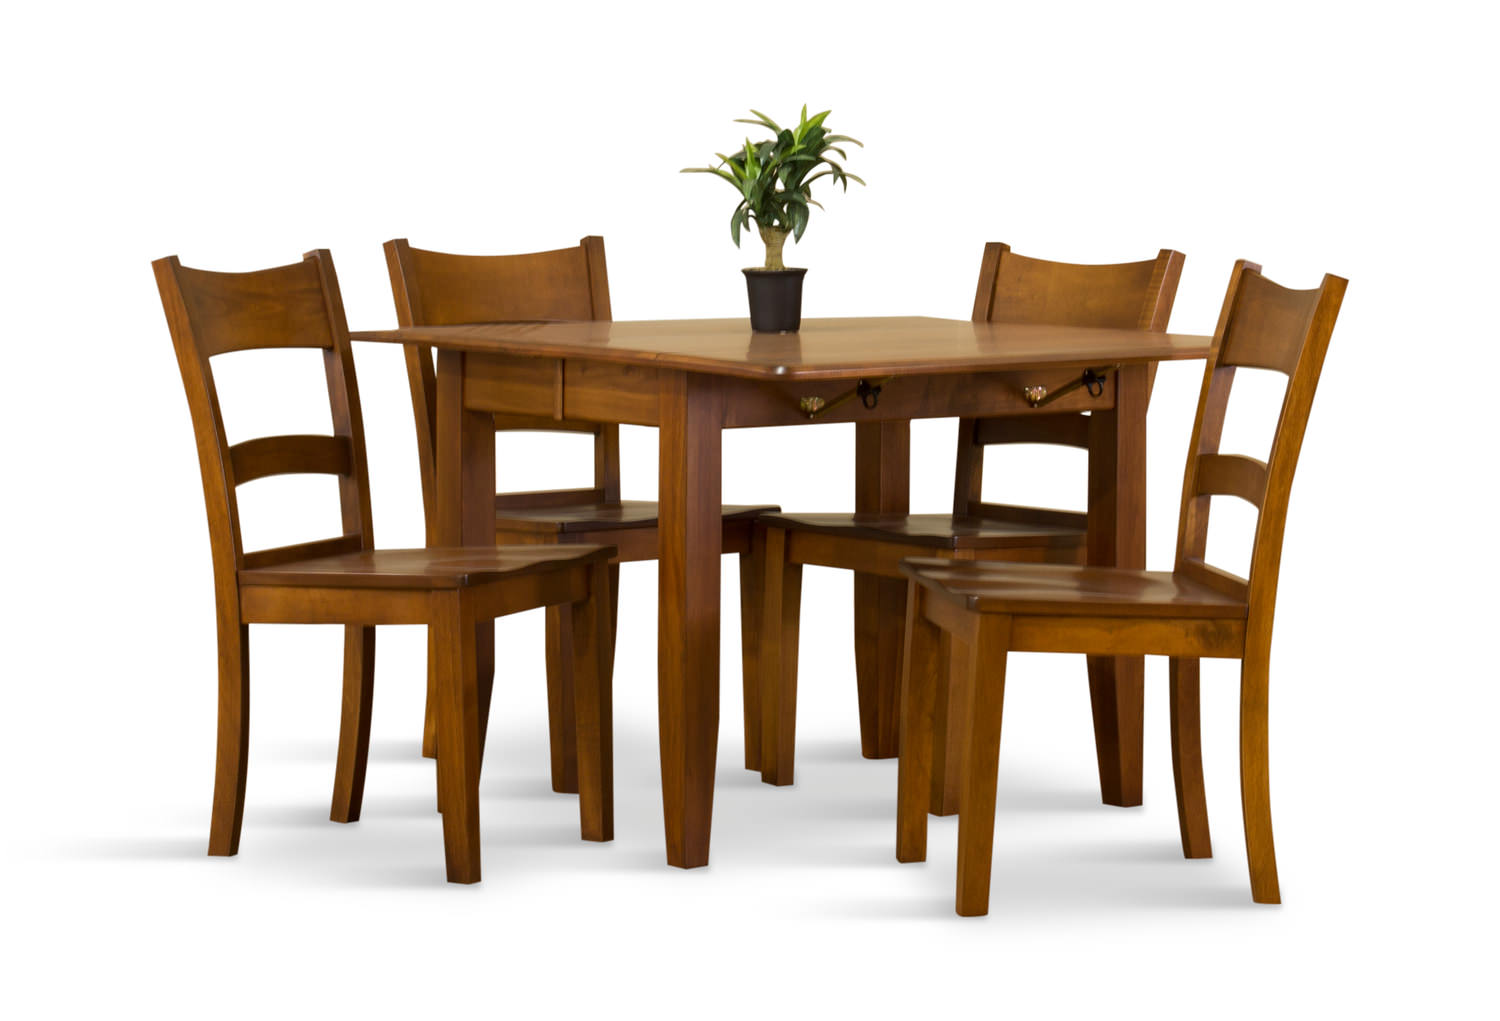 Amish Drop Leaf Table With 4 Chairs | DOCK86